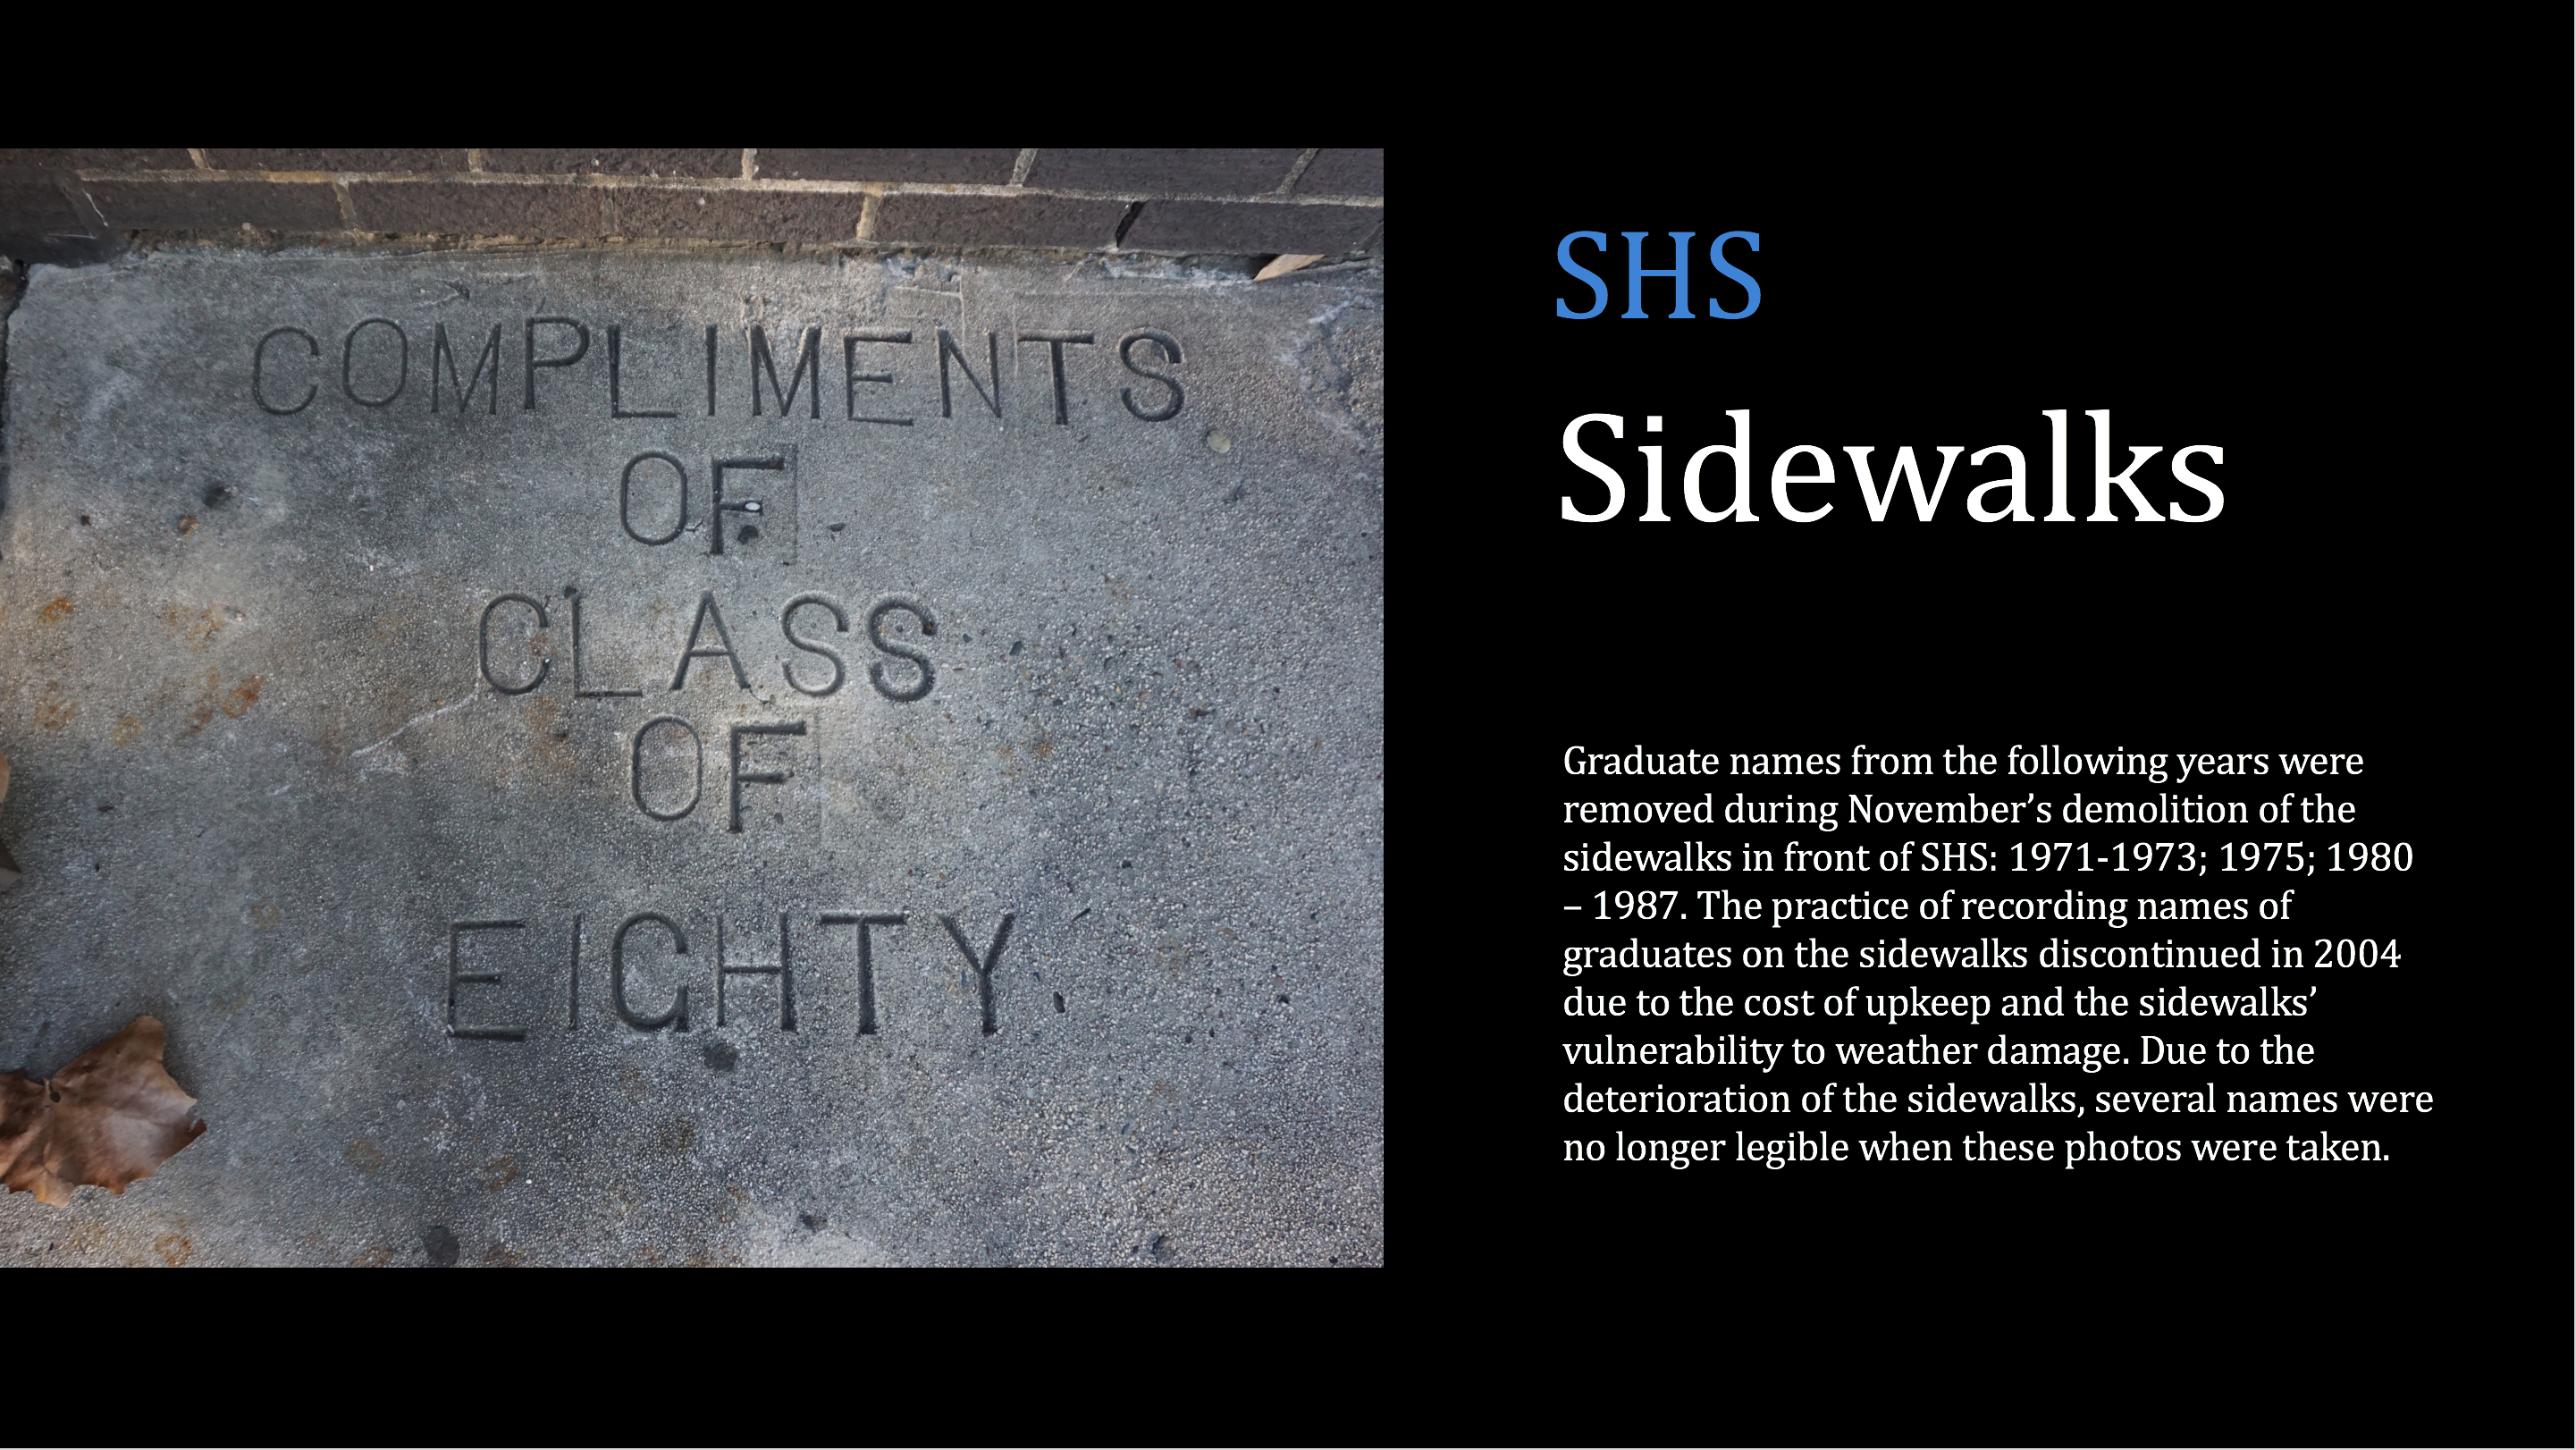 SHS Sidewalks Removed During Construction